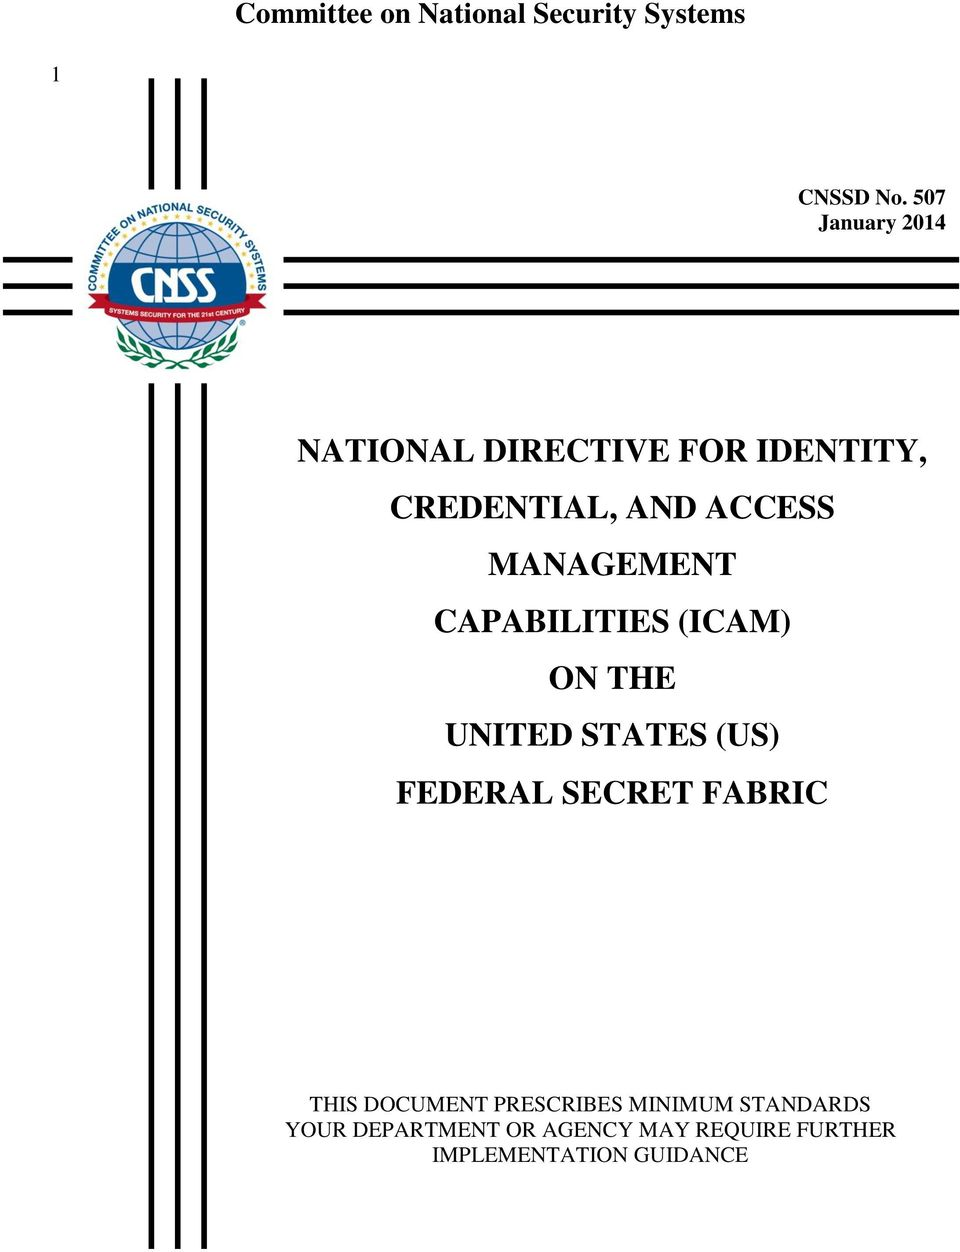 MANAGEMENT CAPABILITIES (ICAM) ON THE UNITED STATES (US) FEDERAL SECRET FABRIC